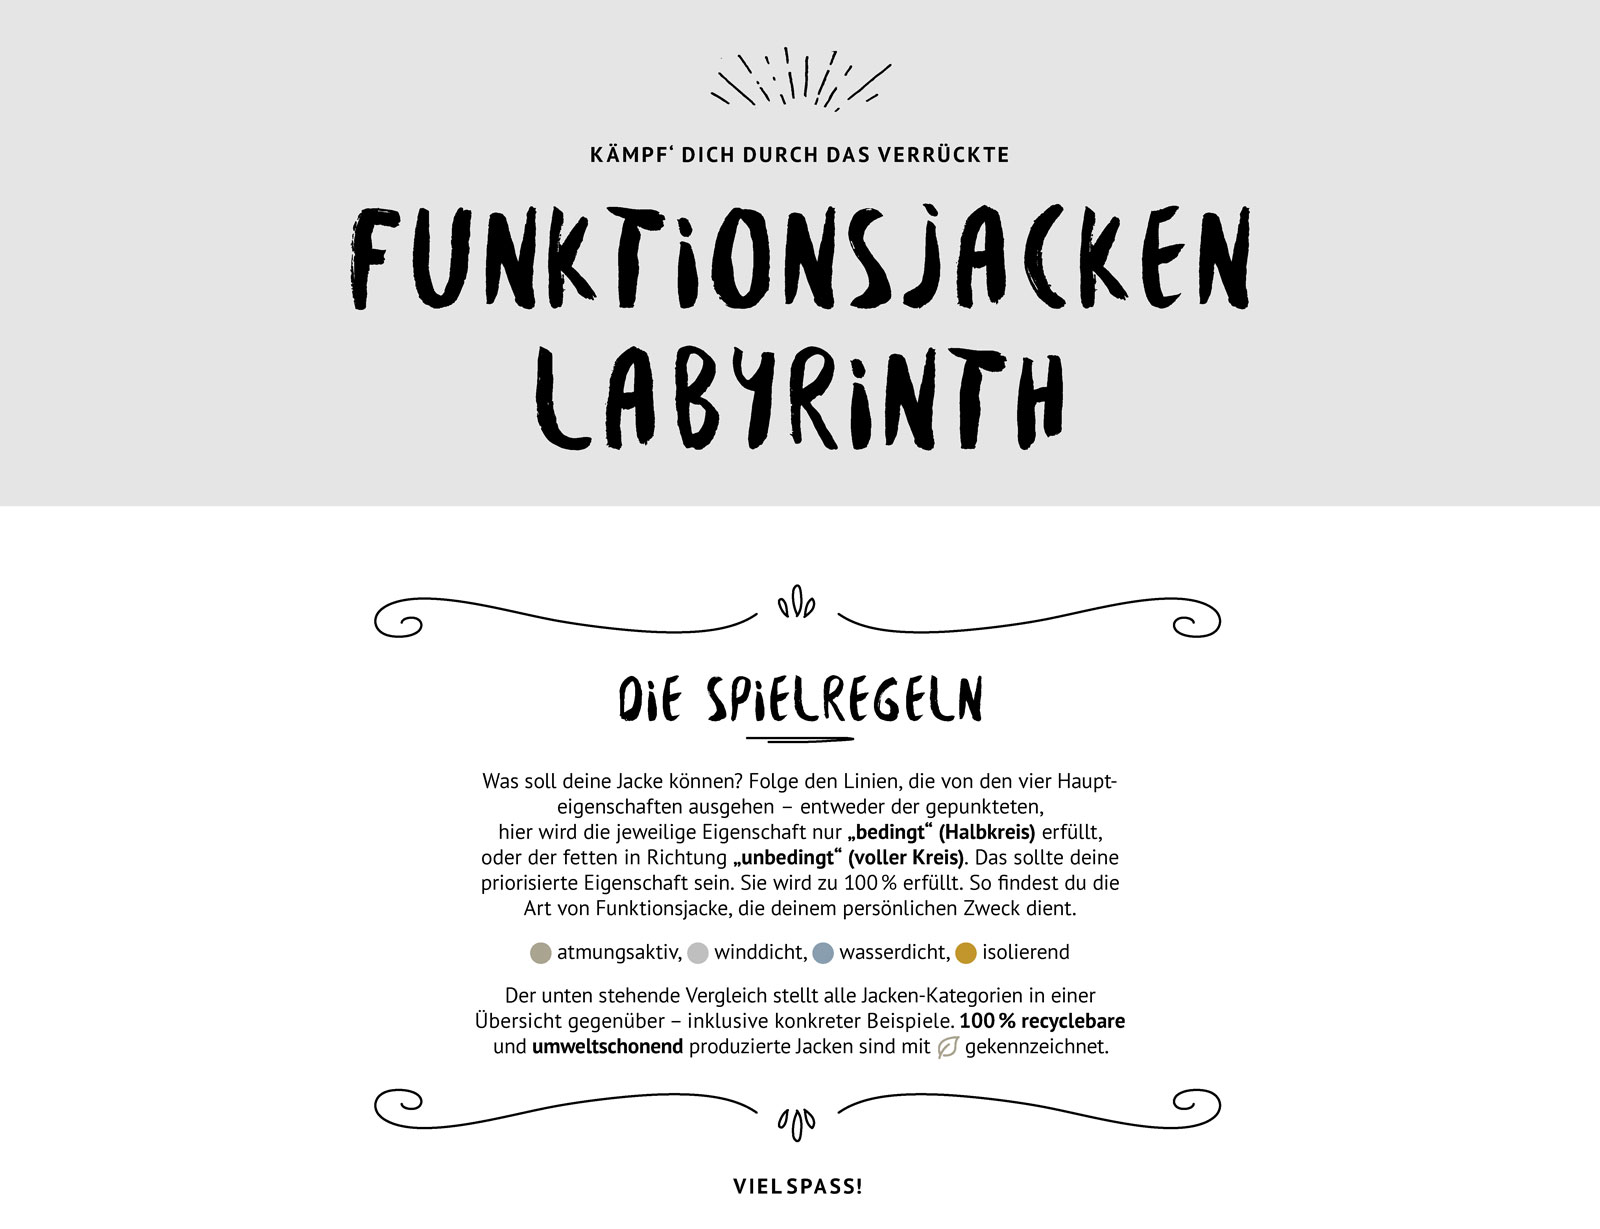 gw-funktionsjacken-labyrinth-01-wp